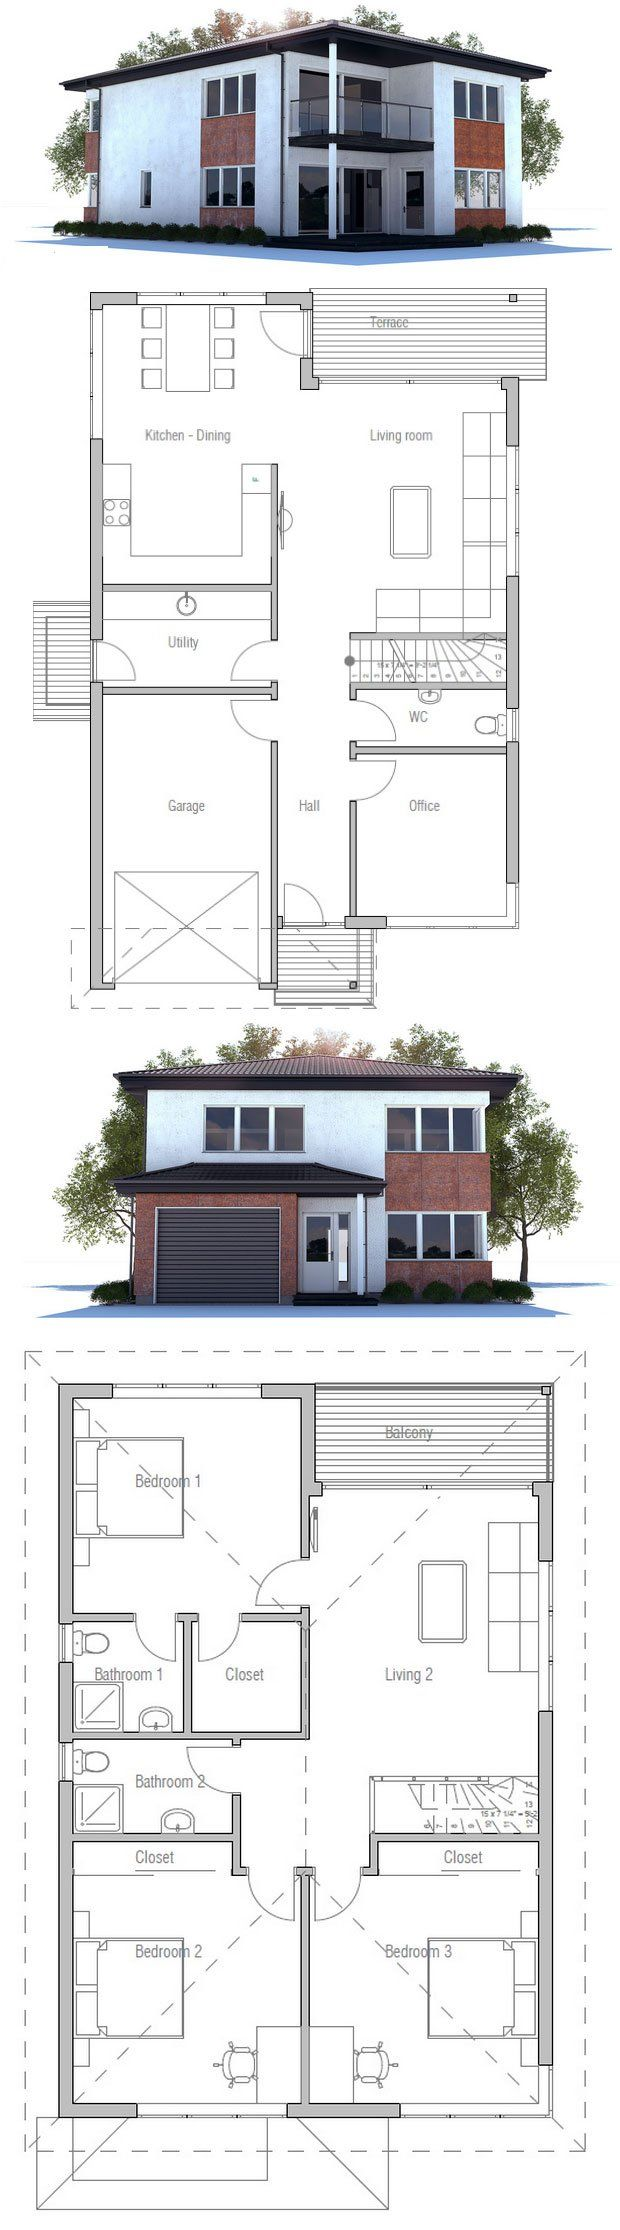 25 Best Ideas About Drawing House Plans On Pinterest Floor Plan Drawing Home Blueprints And Sims 4 Houses Layout